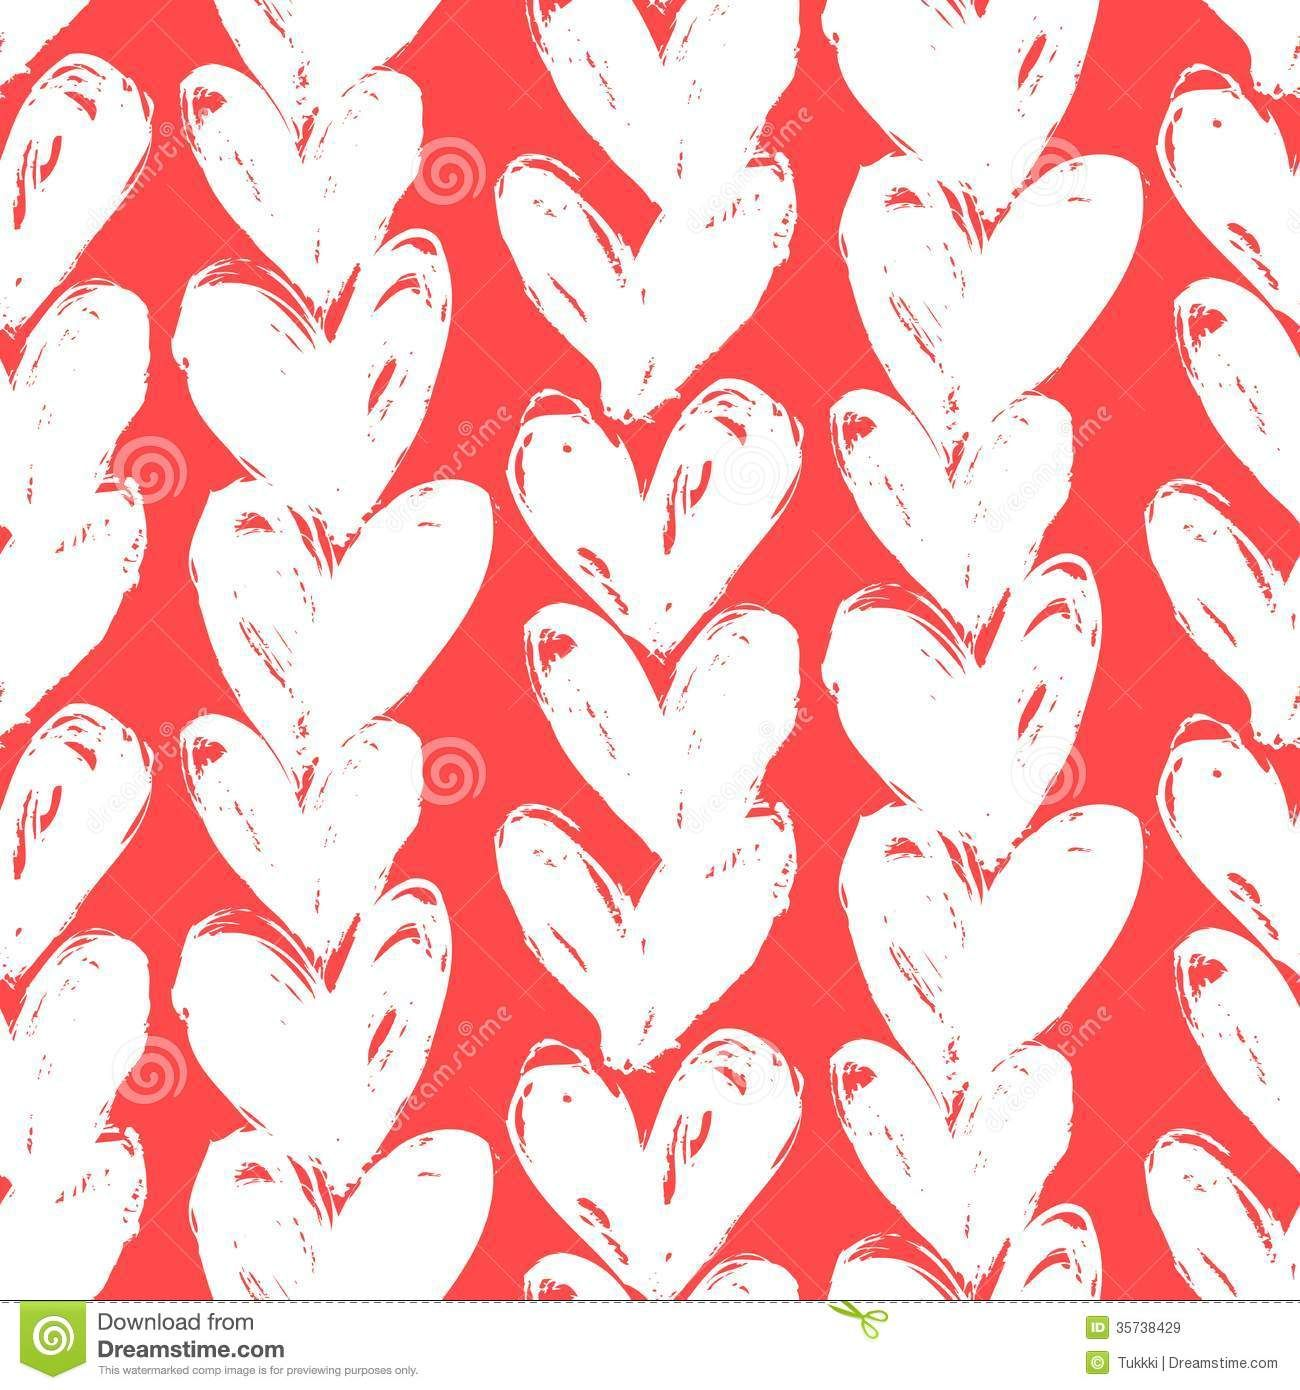 wrapping - Valentines Day Wrapping Paper